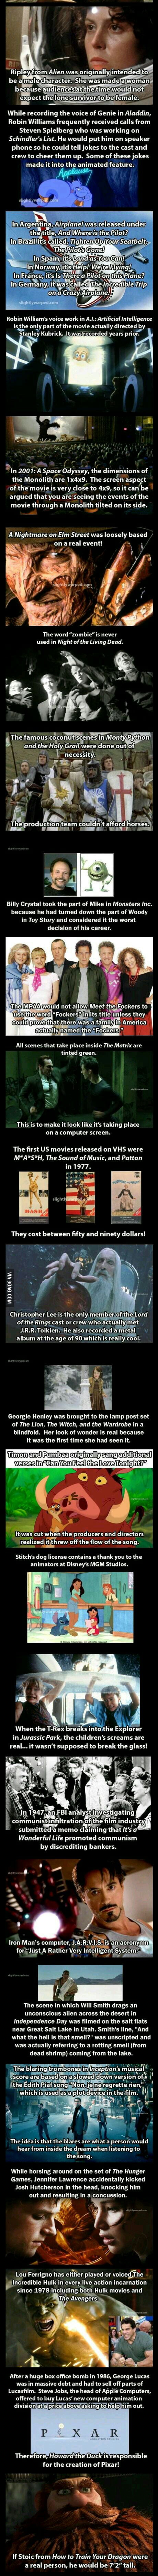 Interesting facts about famous movies